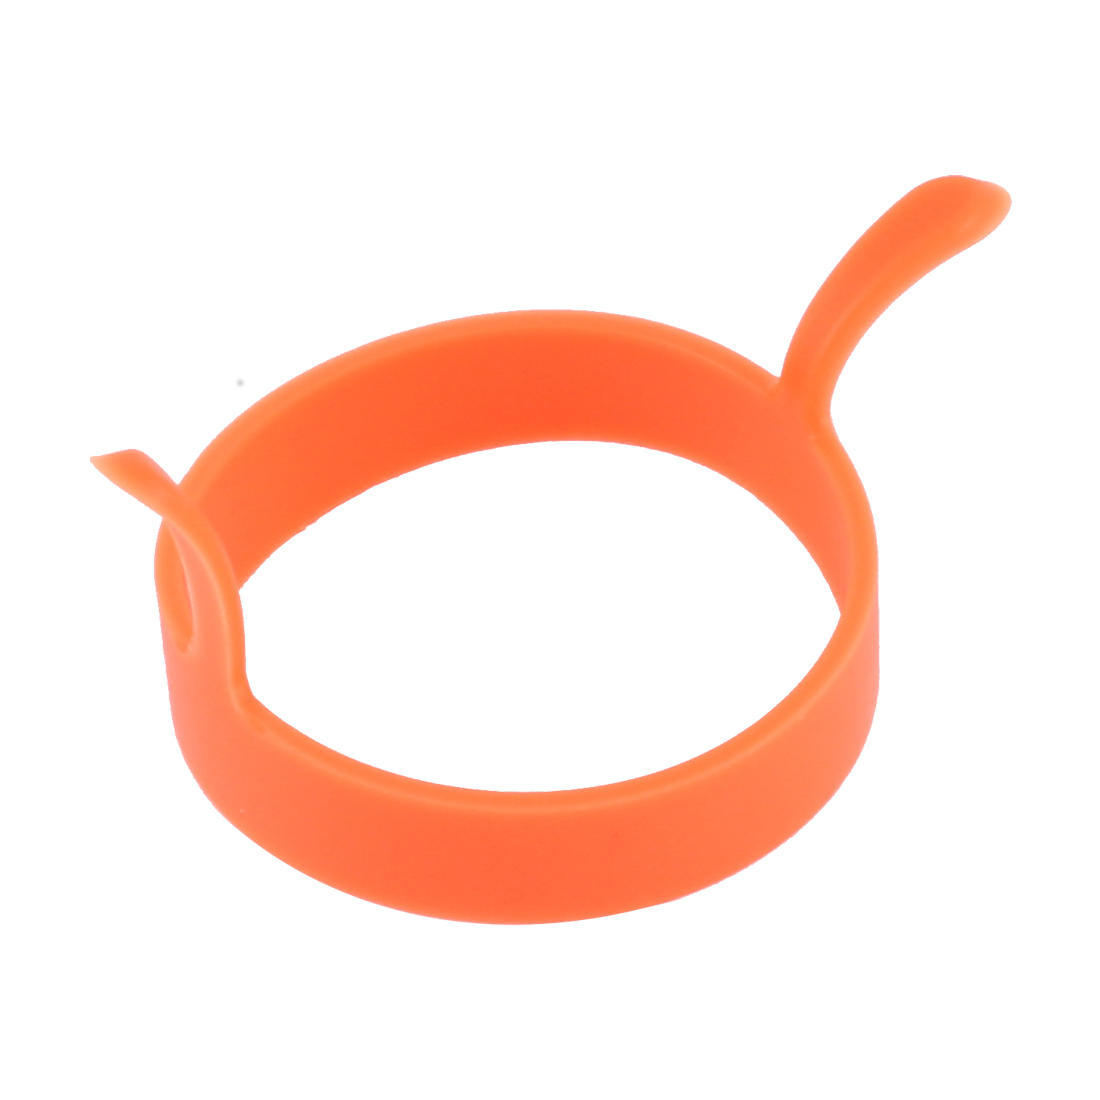 Fried Egg Omelette Pancake Silicone Nonstick Shaper Ring Mold Orange